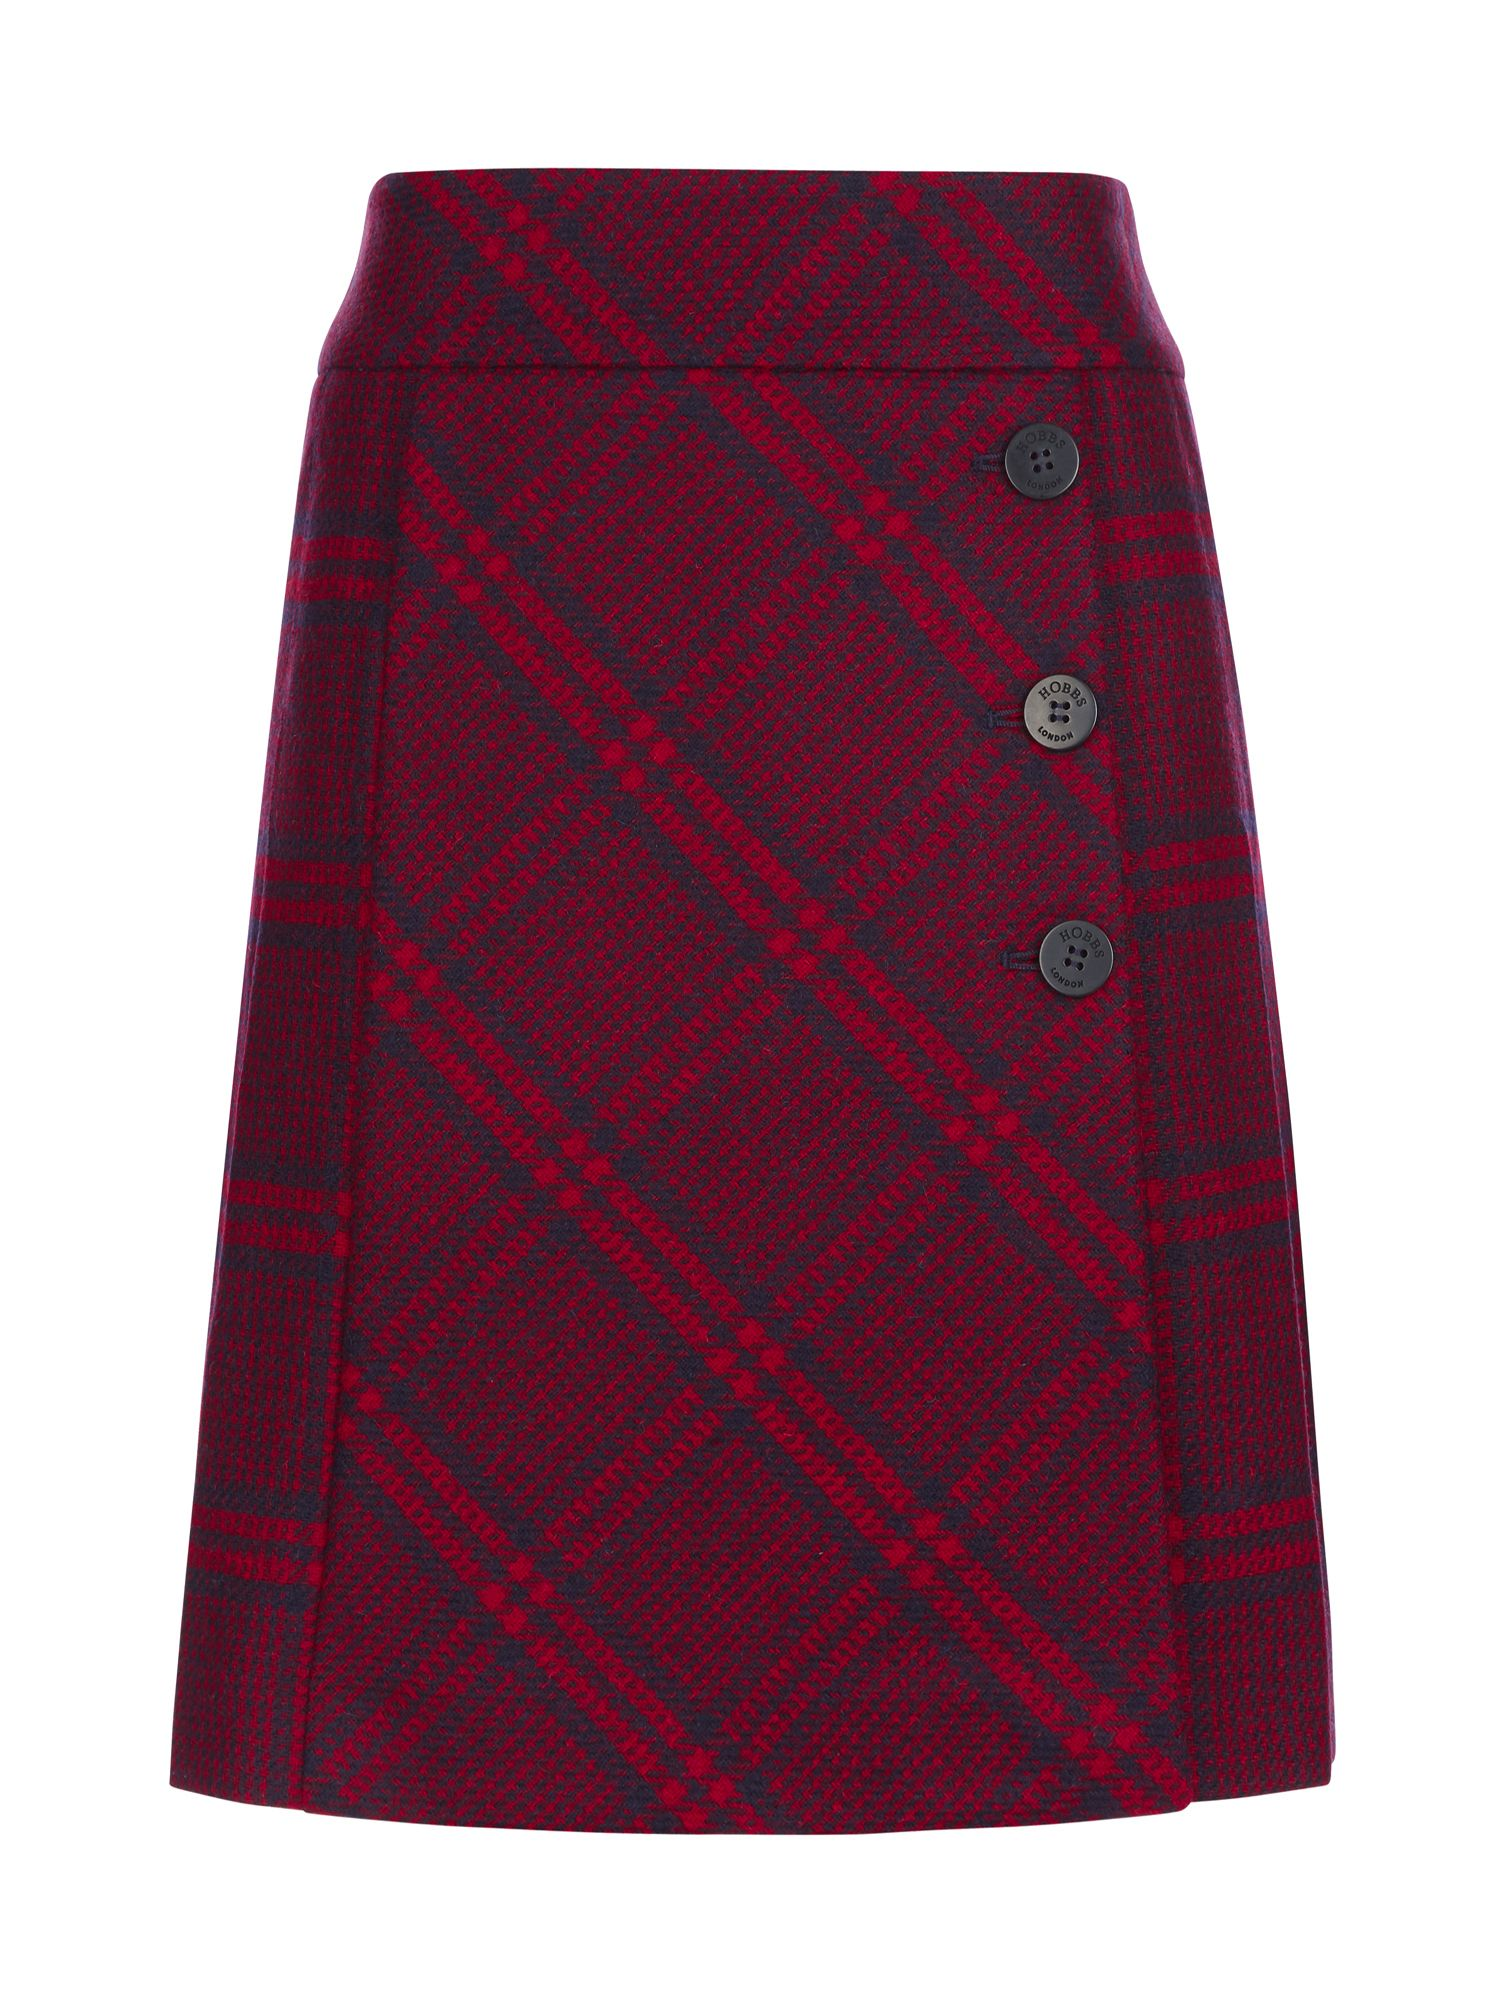 Hobbs Trent Skirt, Multi-Coloured